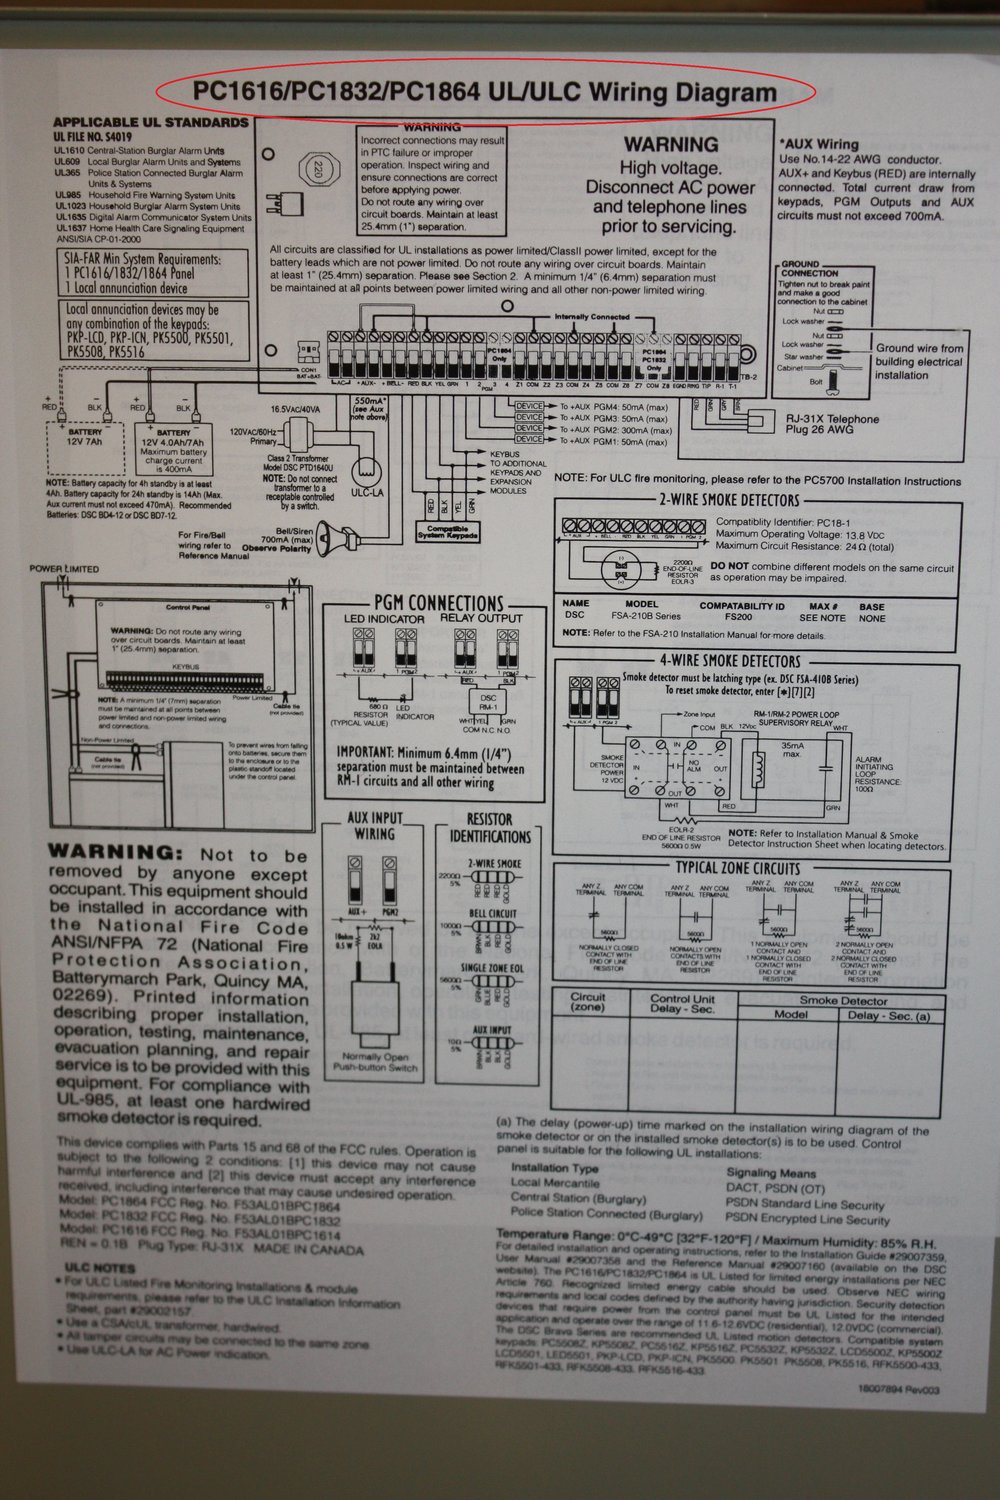 5508 dsc led nca alarms nashville schematic for the 5508 dsc led alarm system showing the serial number location nca alarms asfbconference2016 Choice Image